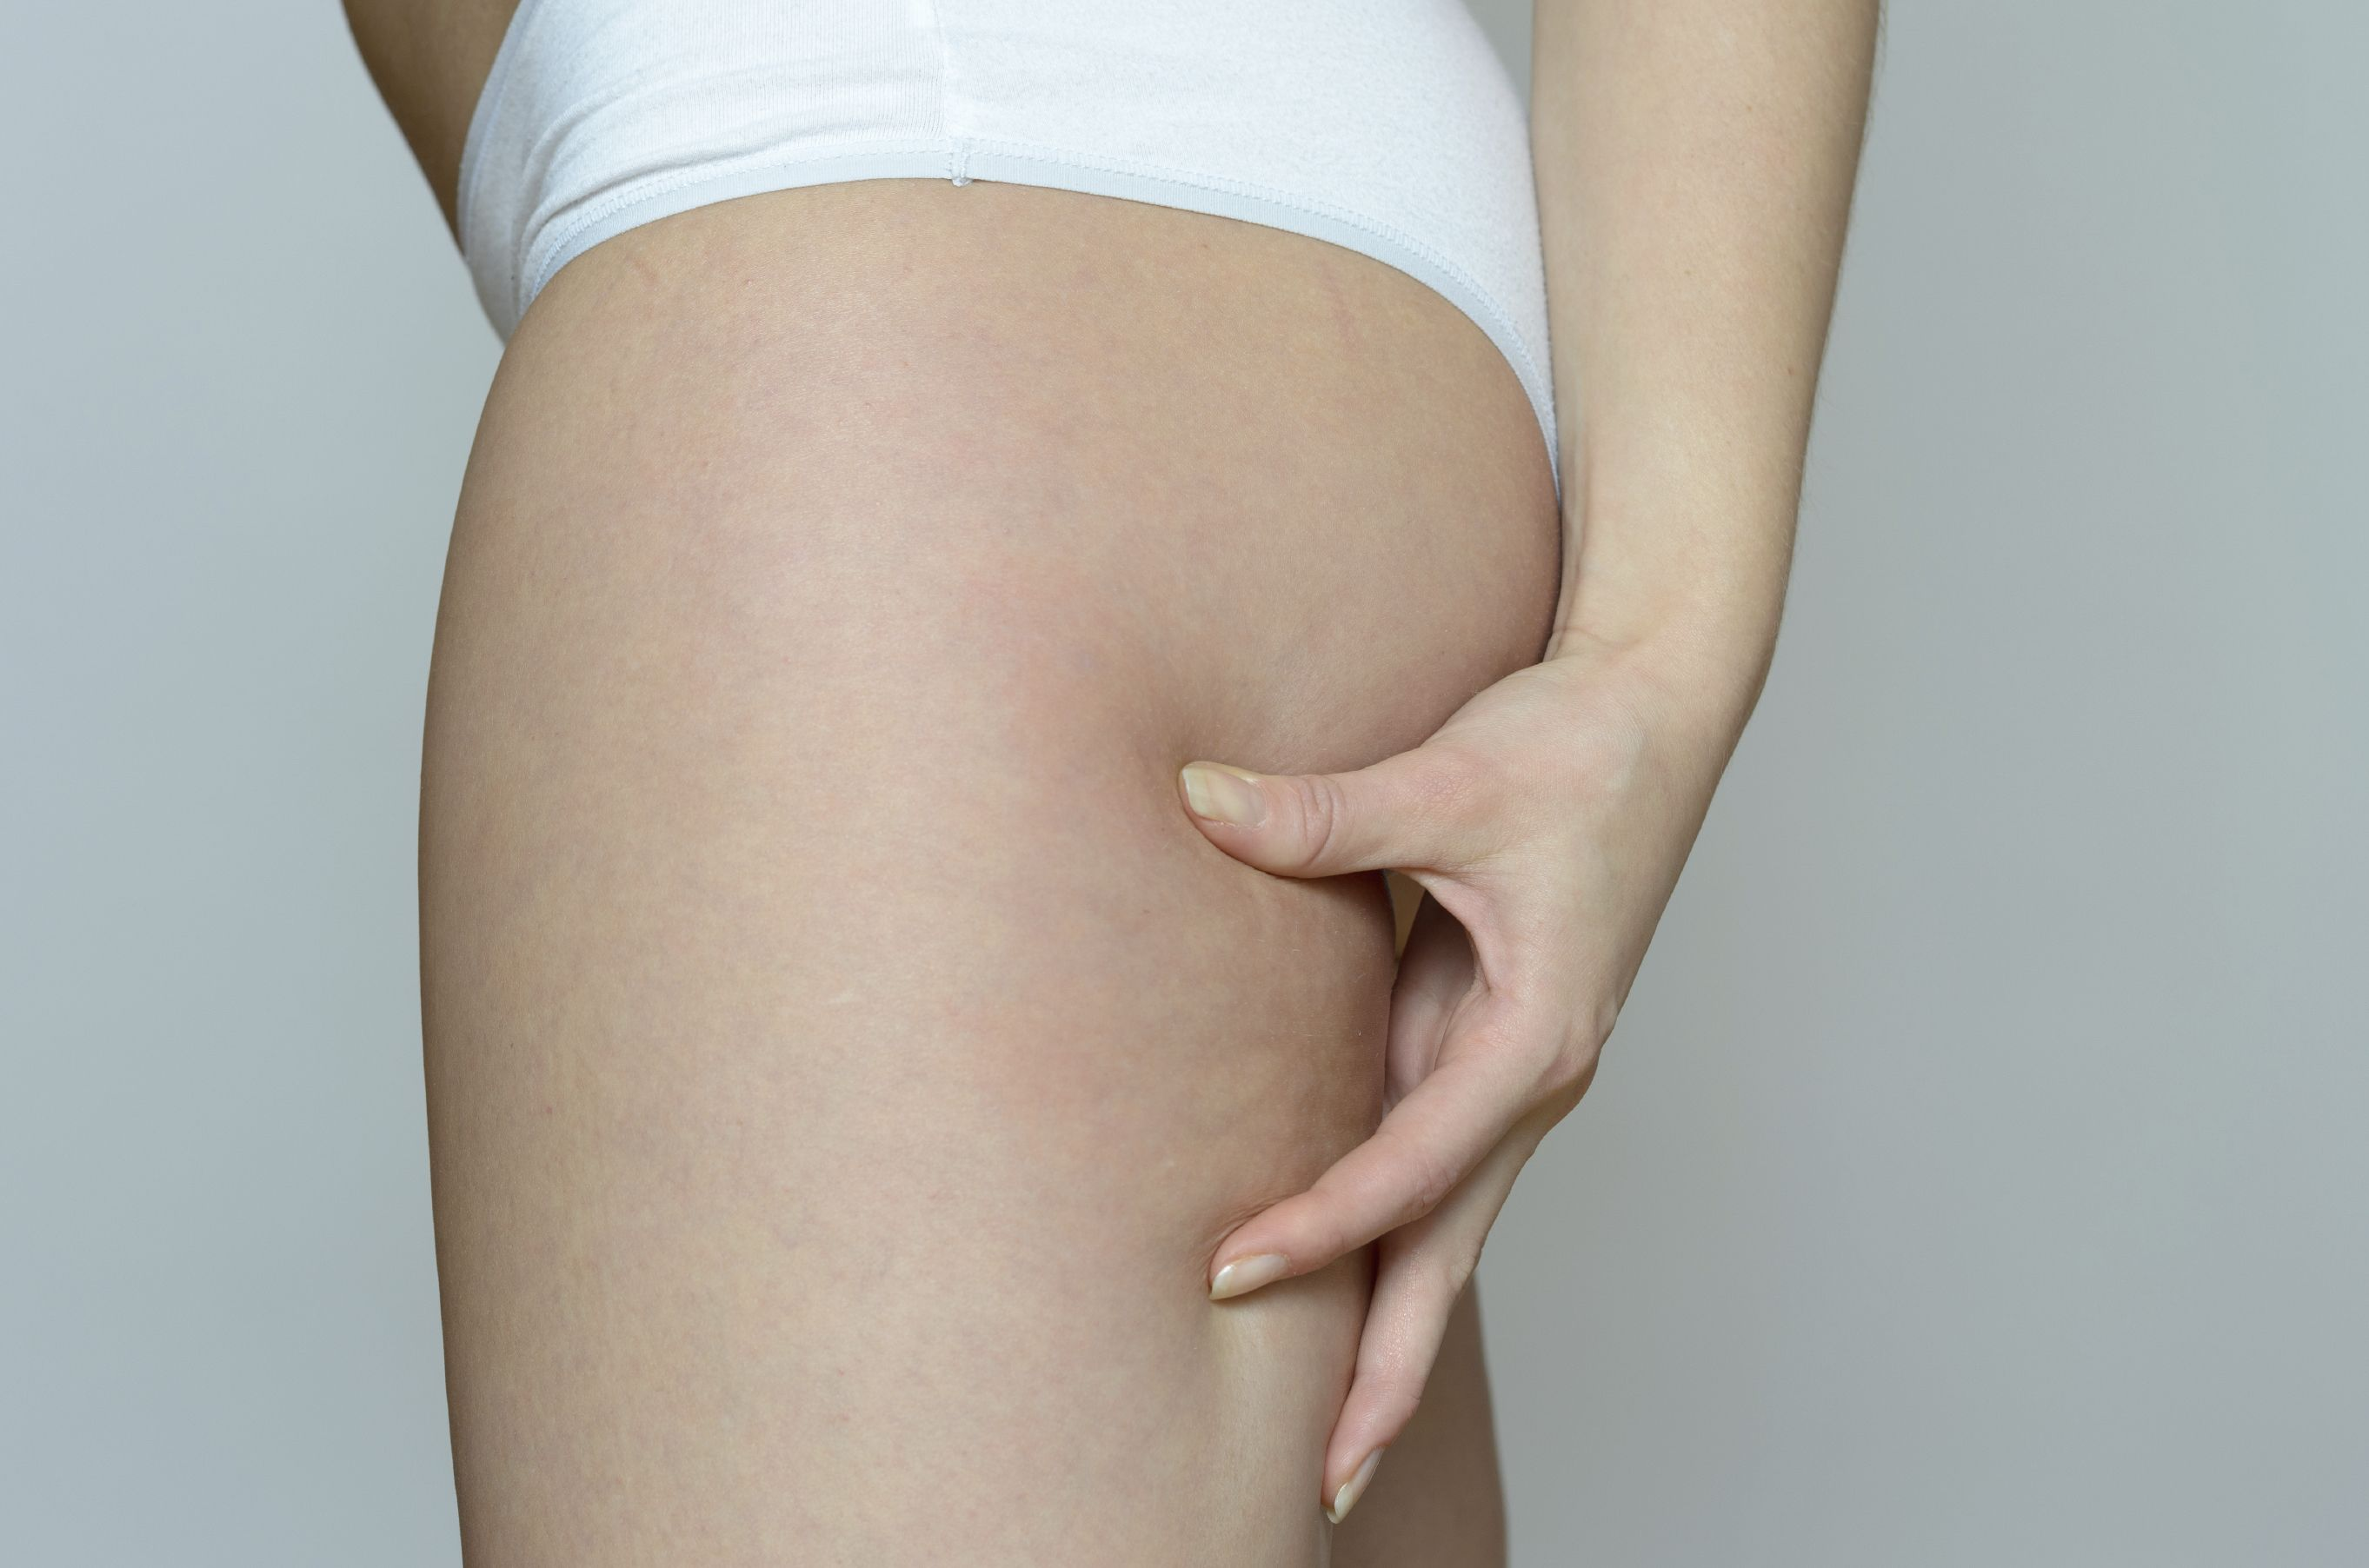 A woman pinching her thighs prior to thigh lift surgery